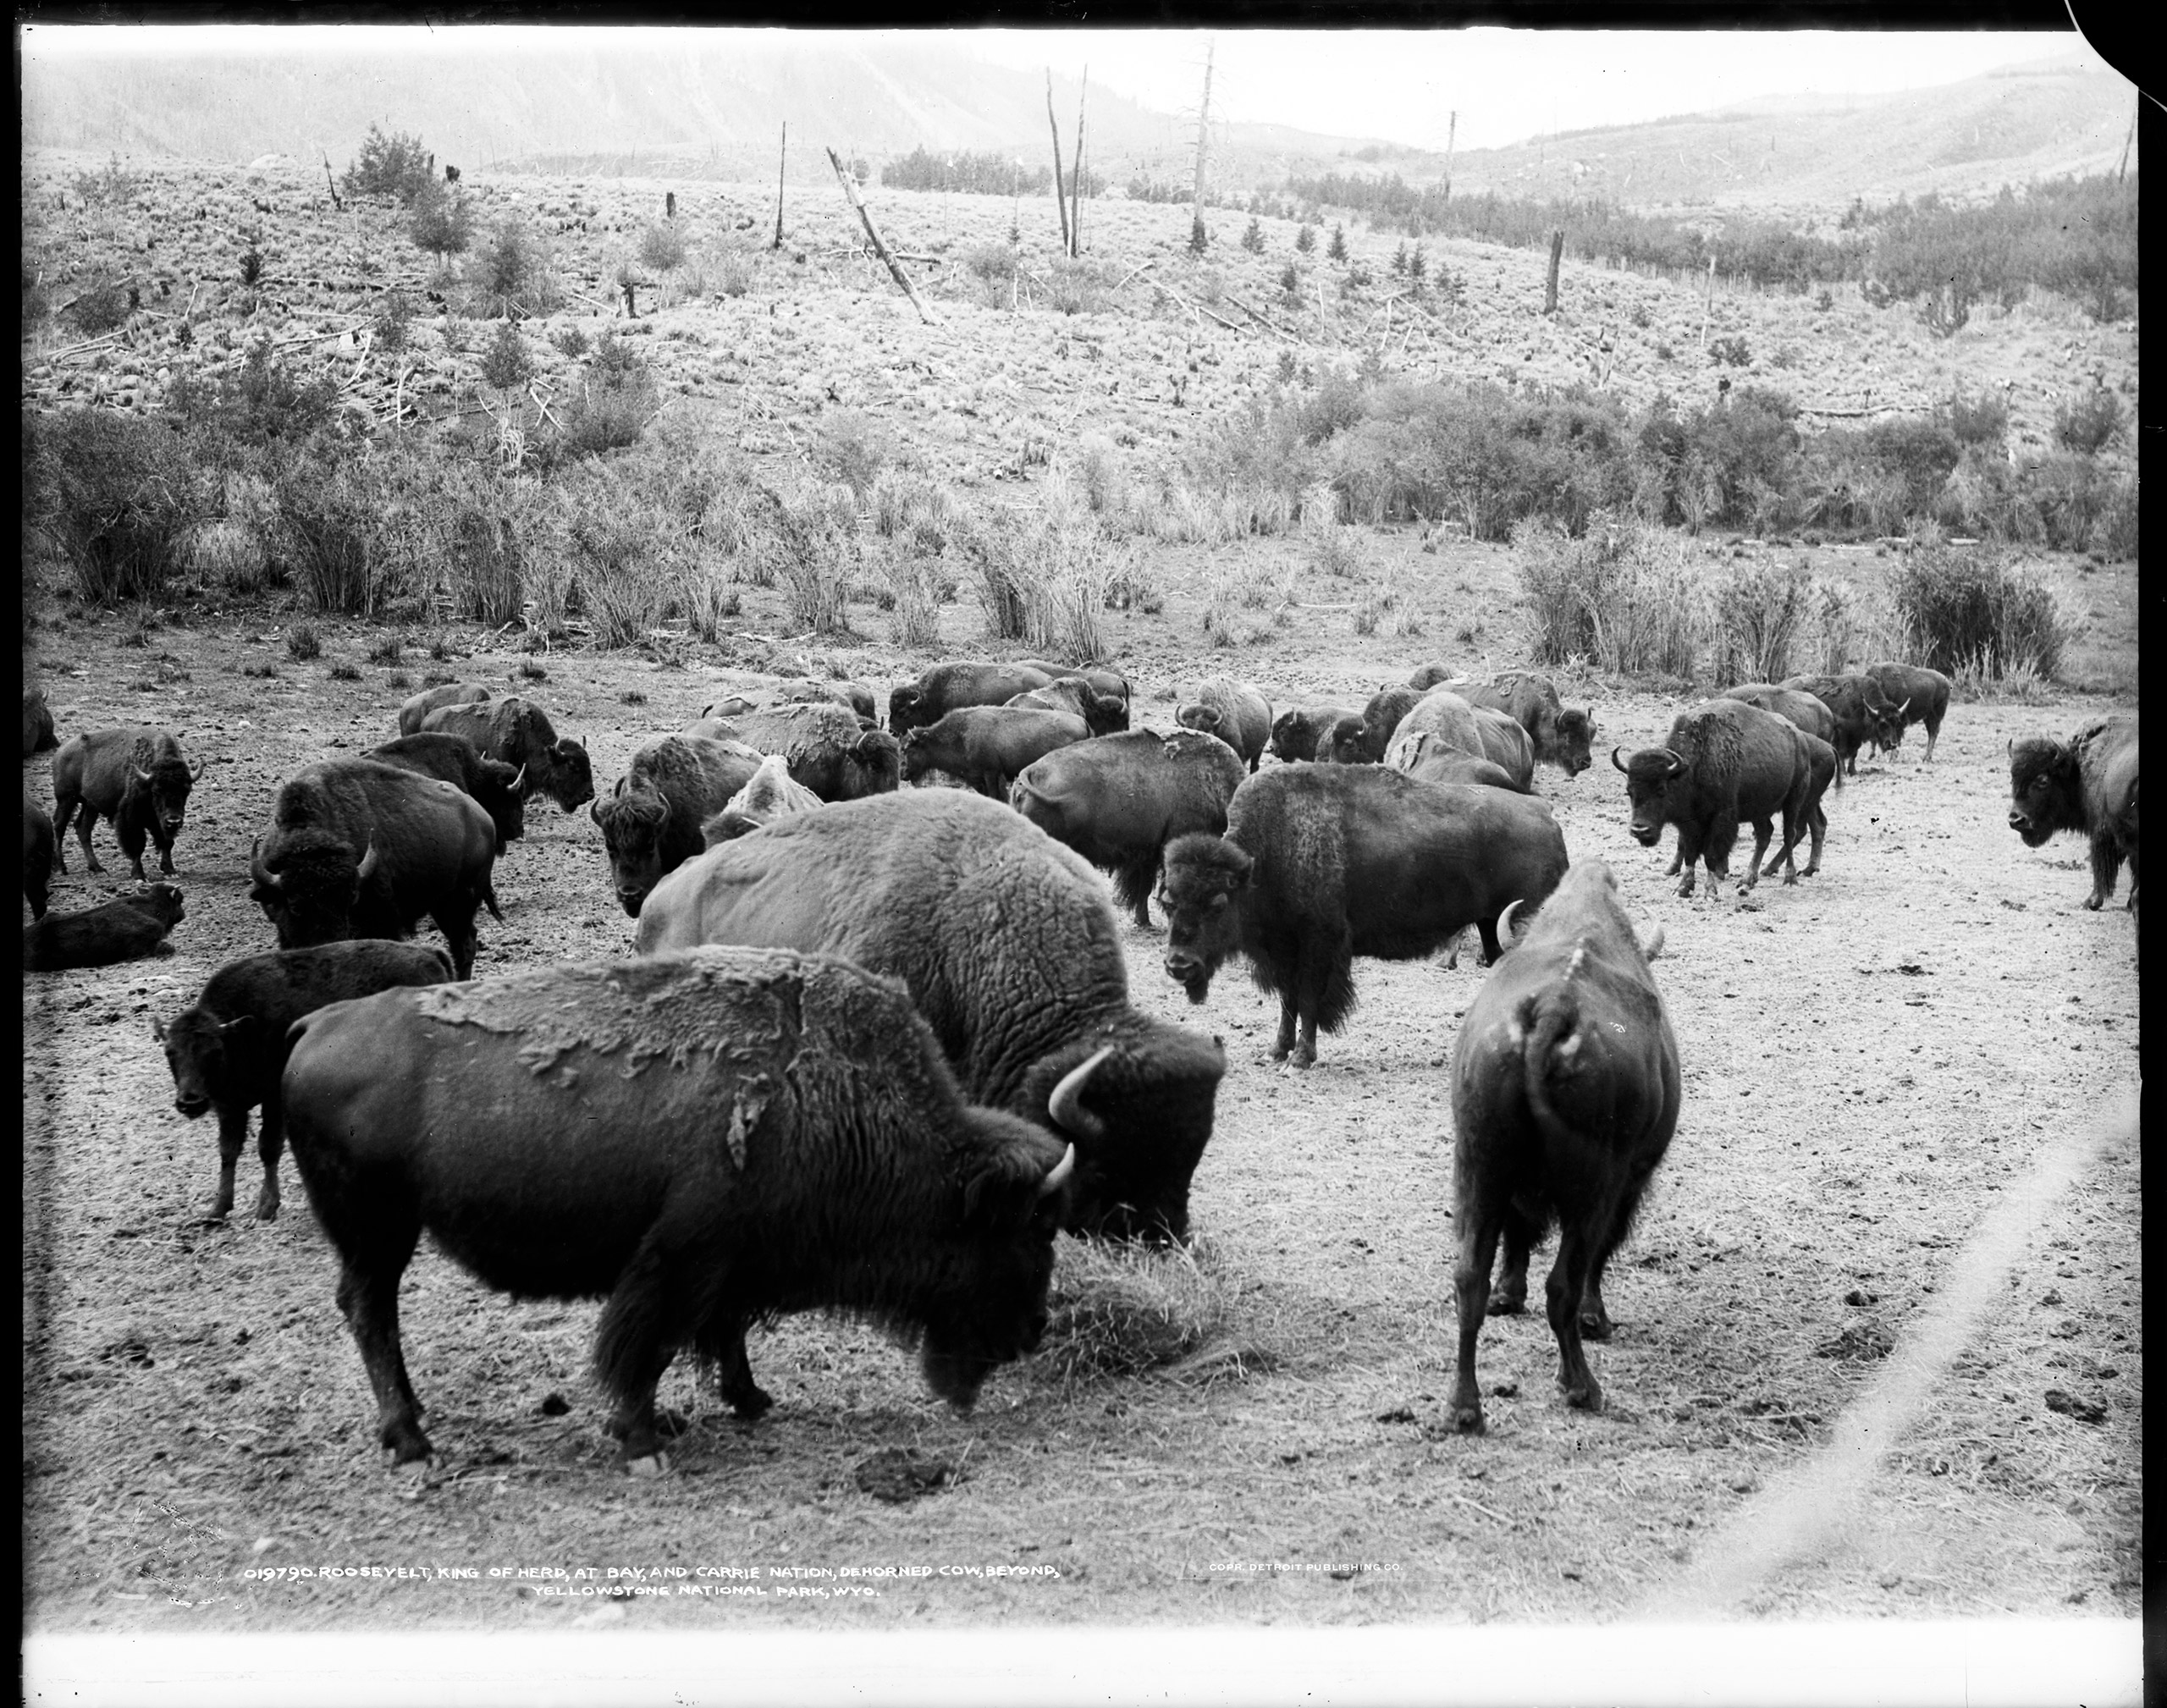 Bison in the Yellowstone National Park, Wyoming. Circa 1907.